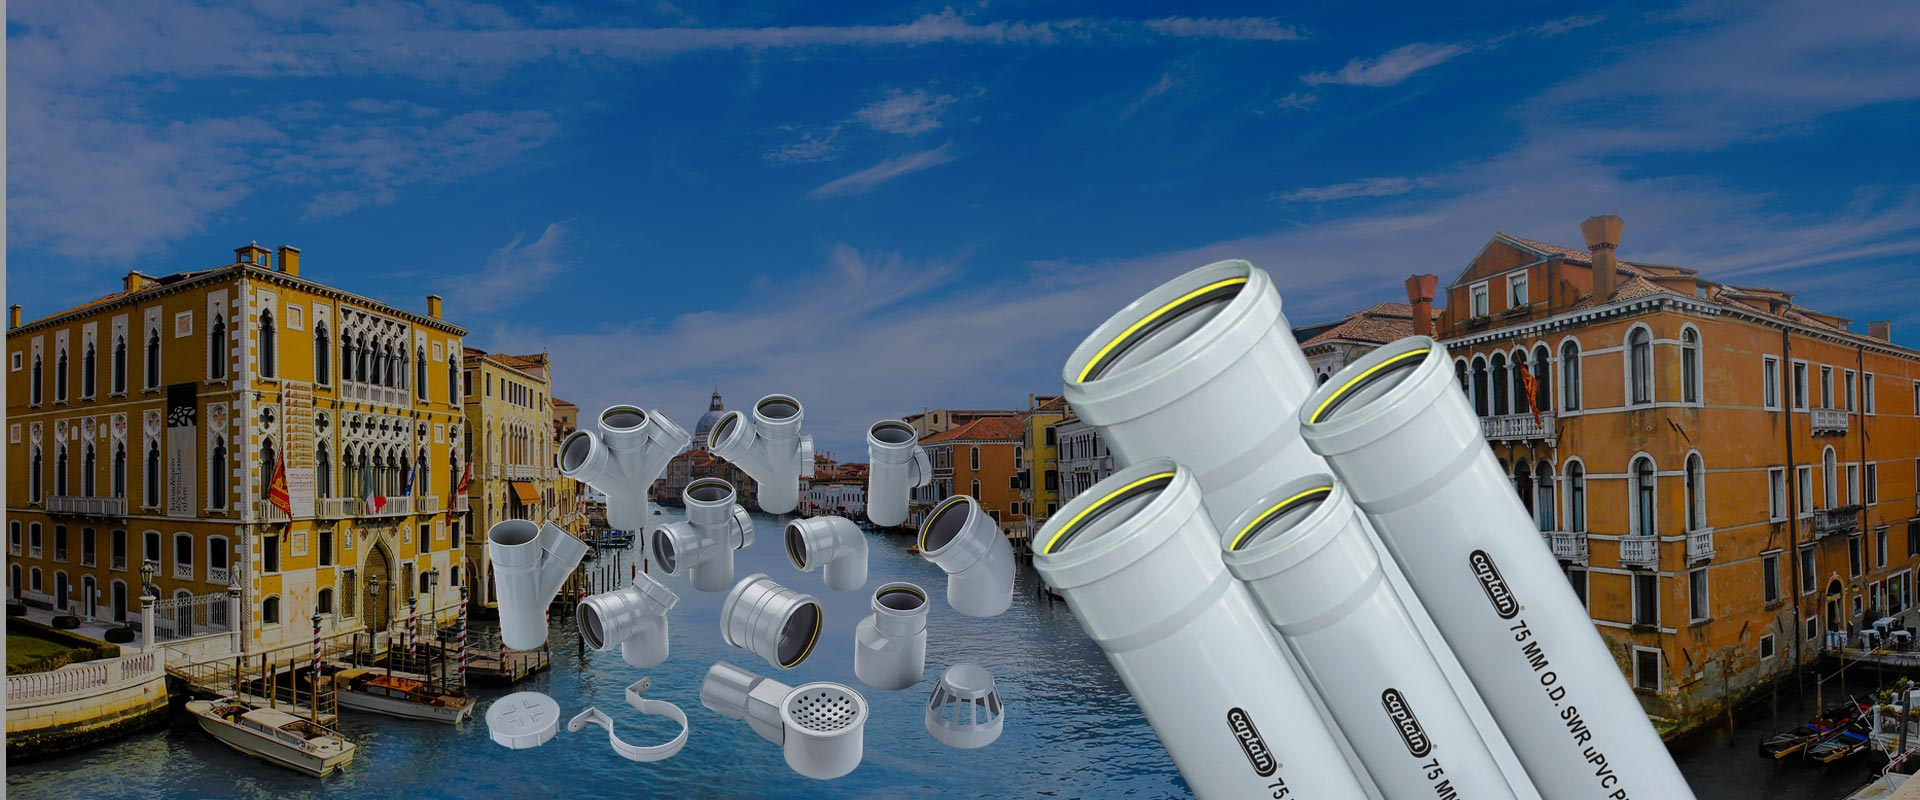 SWR Pipes & Fittings, Extra stronger and long lasting, free from chemical & corrosion resistance, light in weight, resistance to UV degradation and cost effective